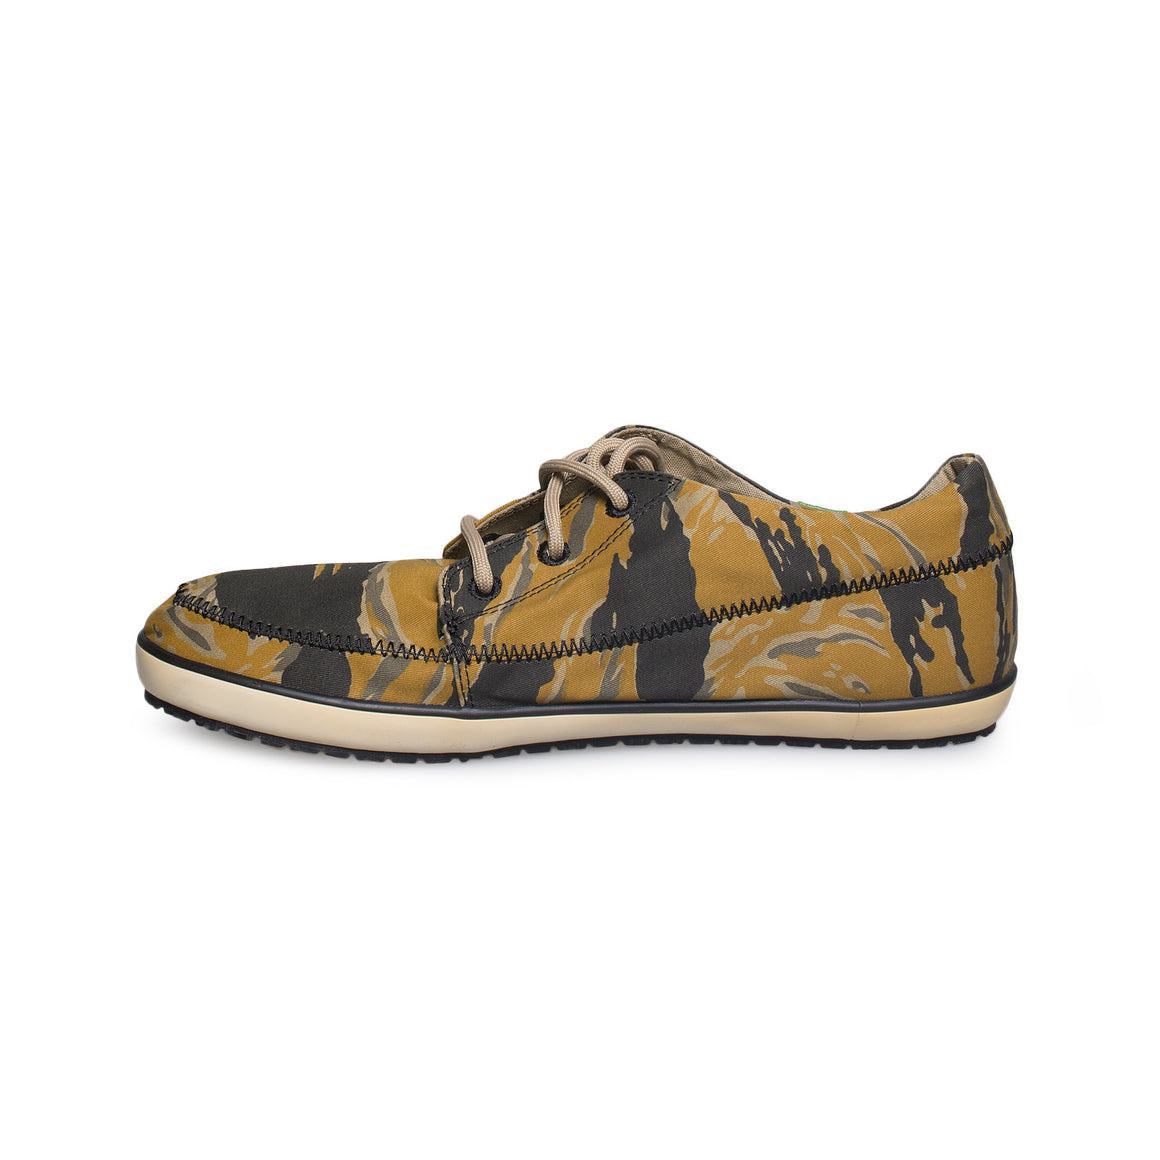 SANUK Cassius Camo Tiger Camo Rust Shoes - Men's